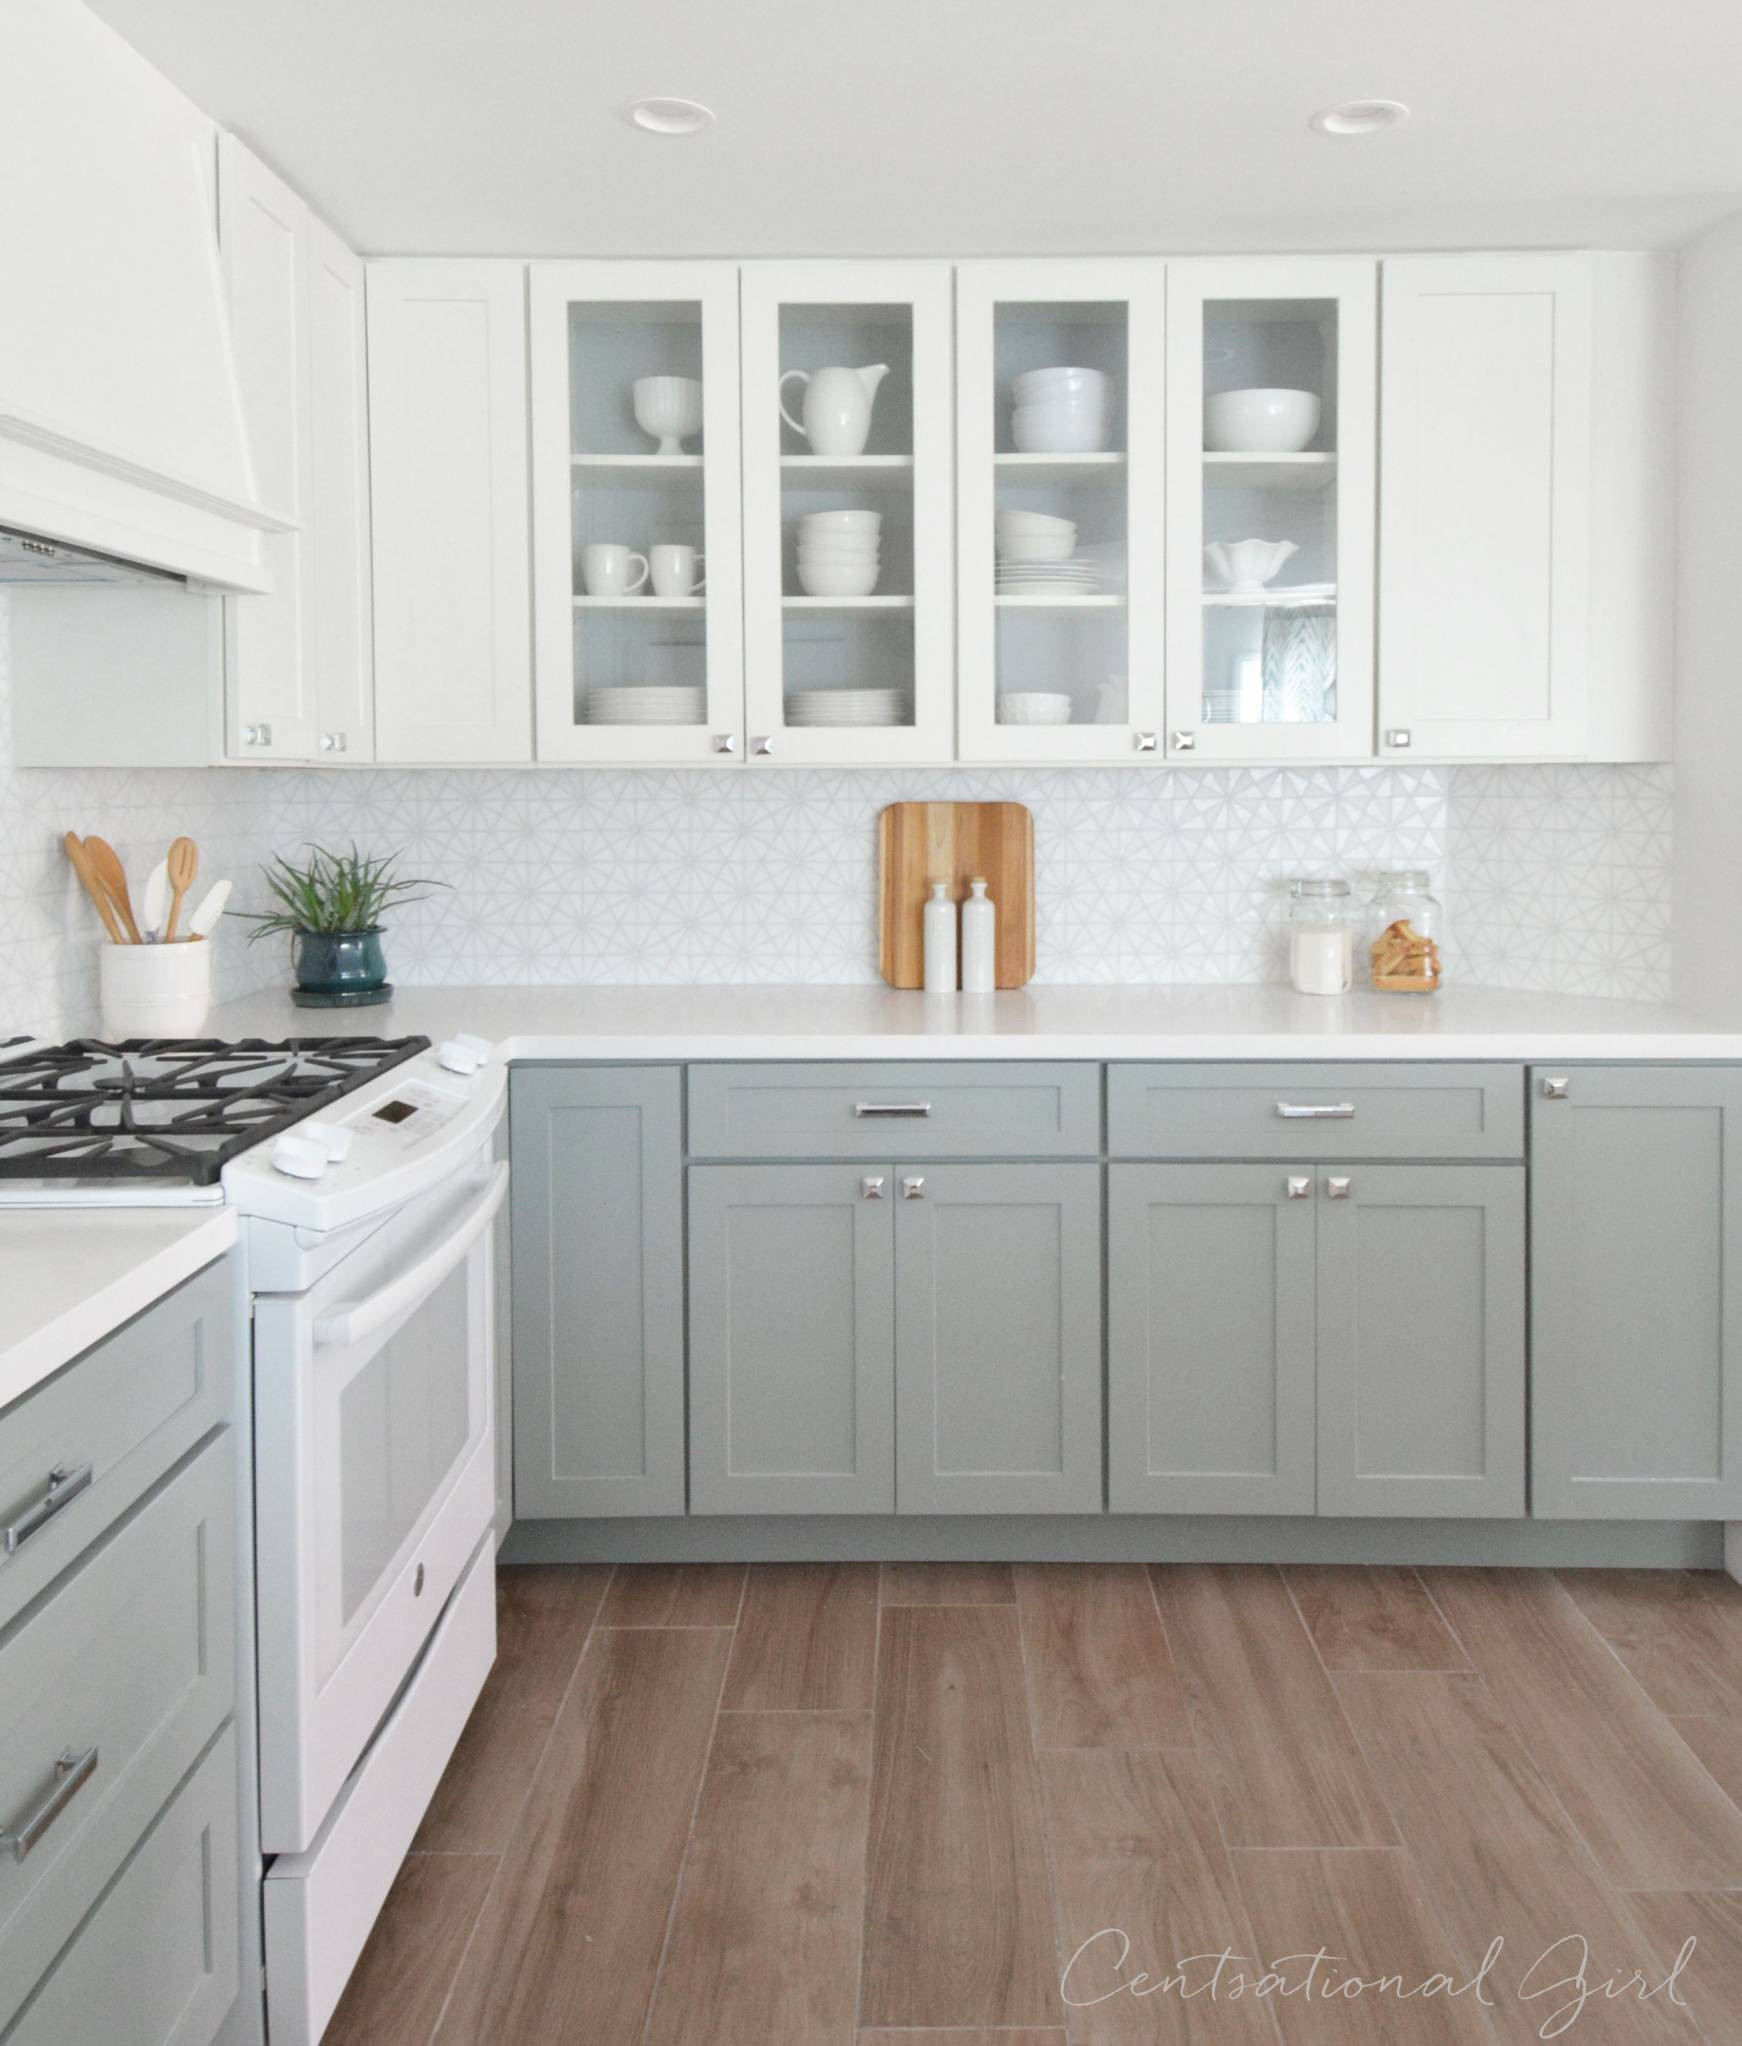 should i put hardwood floors in kitchen of 20 newest of white kitchen cabinets with gray wood floors www within grey kitchens with white cabinets fresh grey kitchens with white cabinets alluring pin od pouaa avateaa